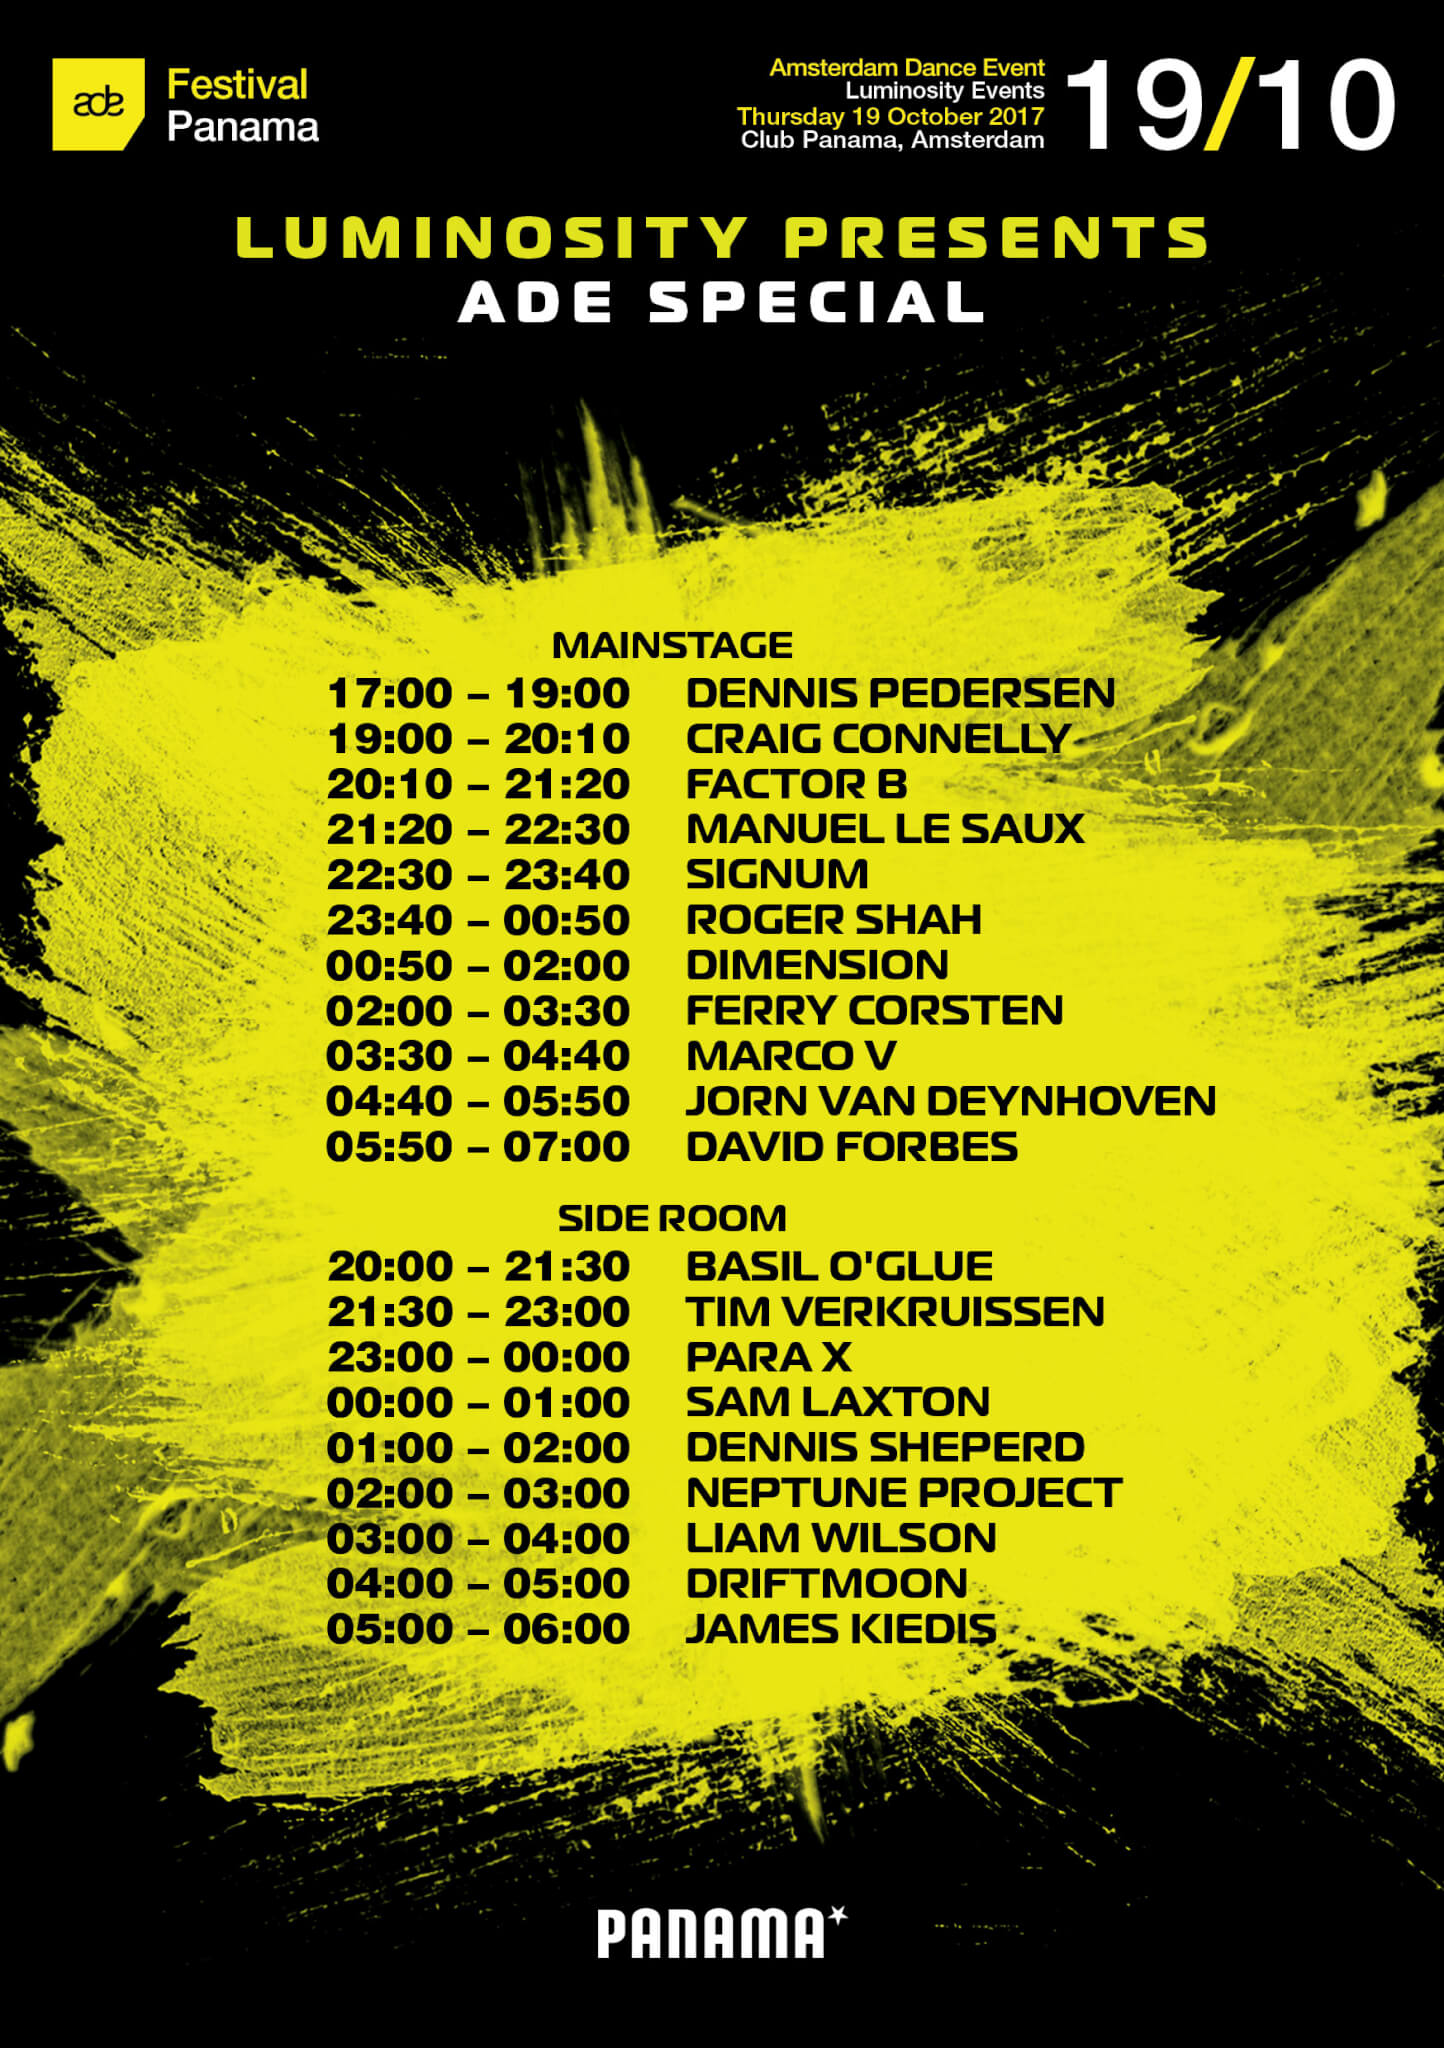 Luminosity presents ADE Special at Club Panama, Amsterdam on 19th of October 2017